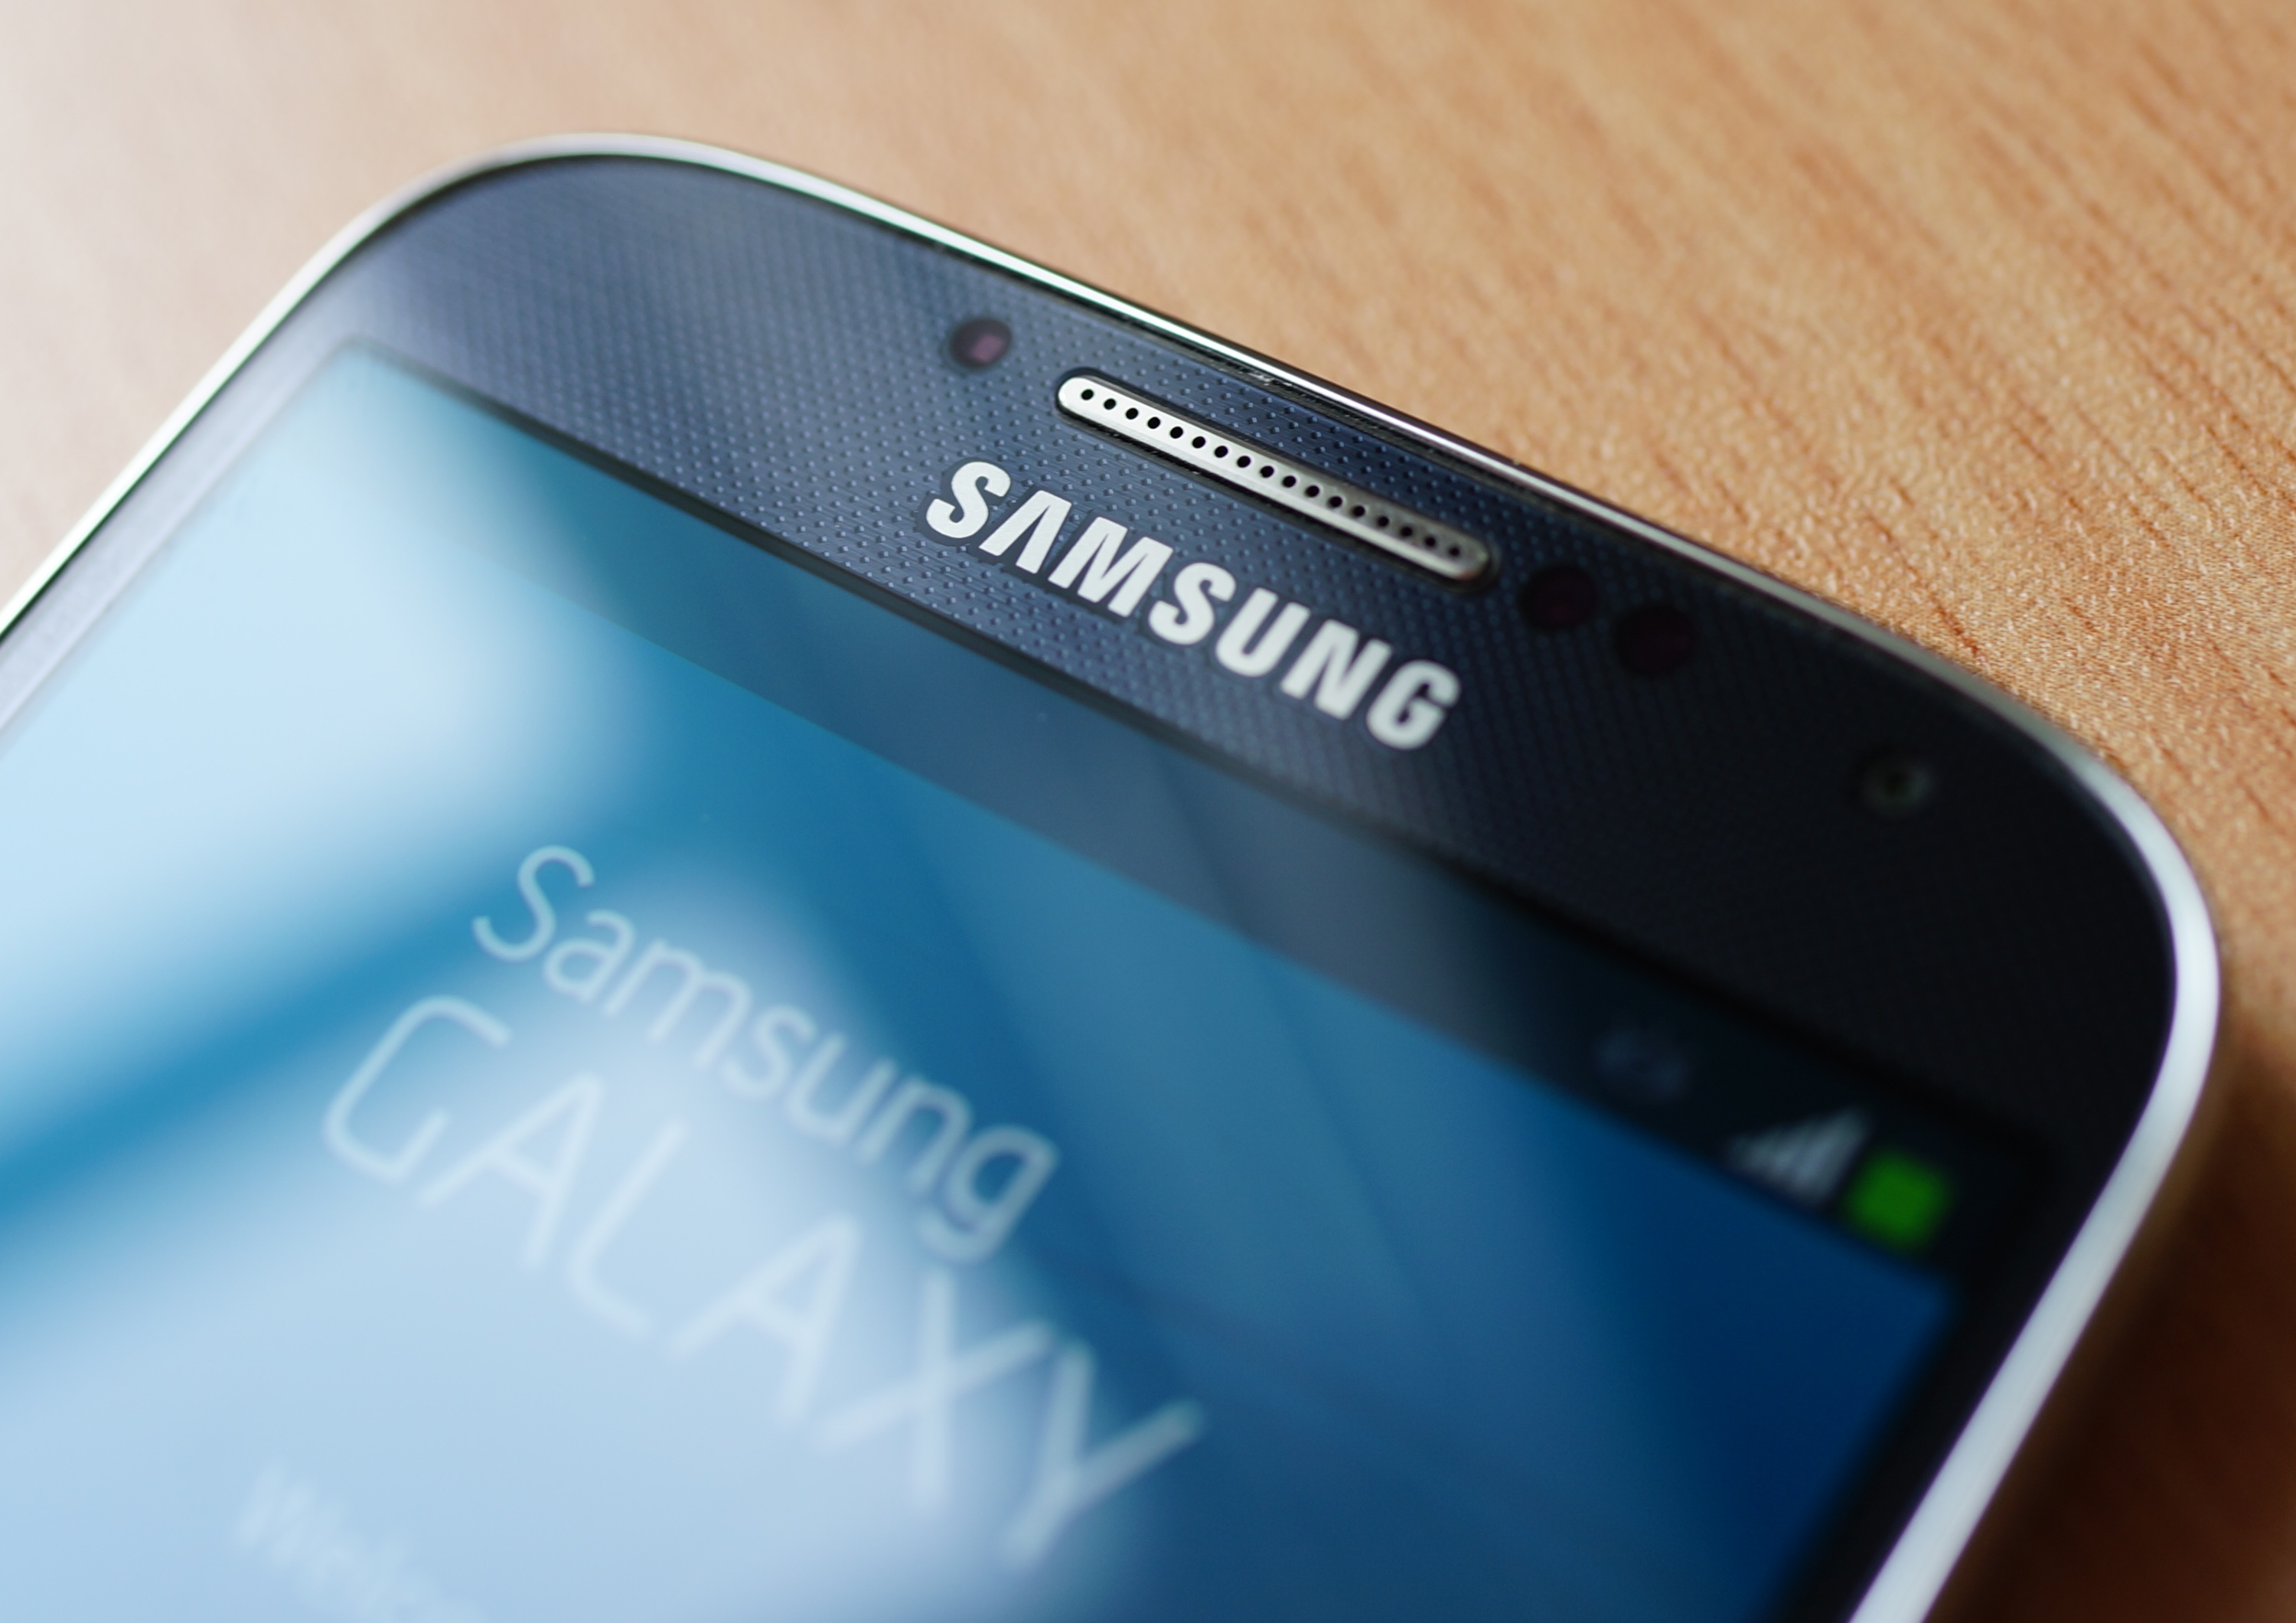 Student Shares Evidence Samsung Staff Viewed Private Photos While Fixing Phone Samsung Galaxy S4 close up